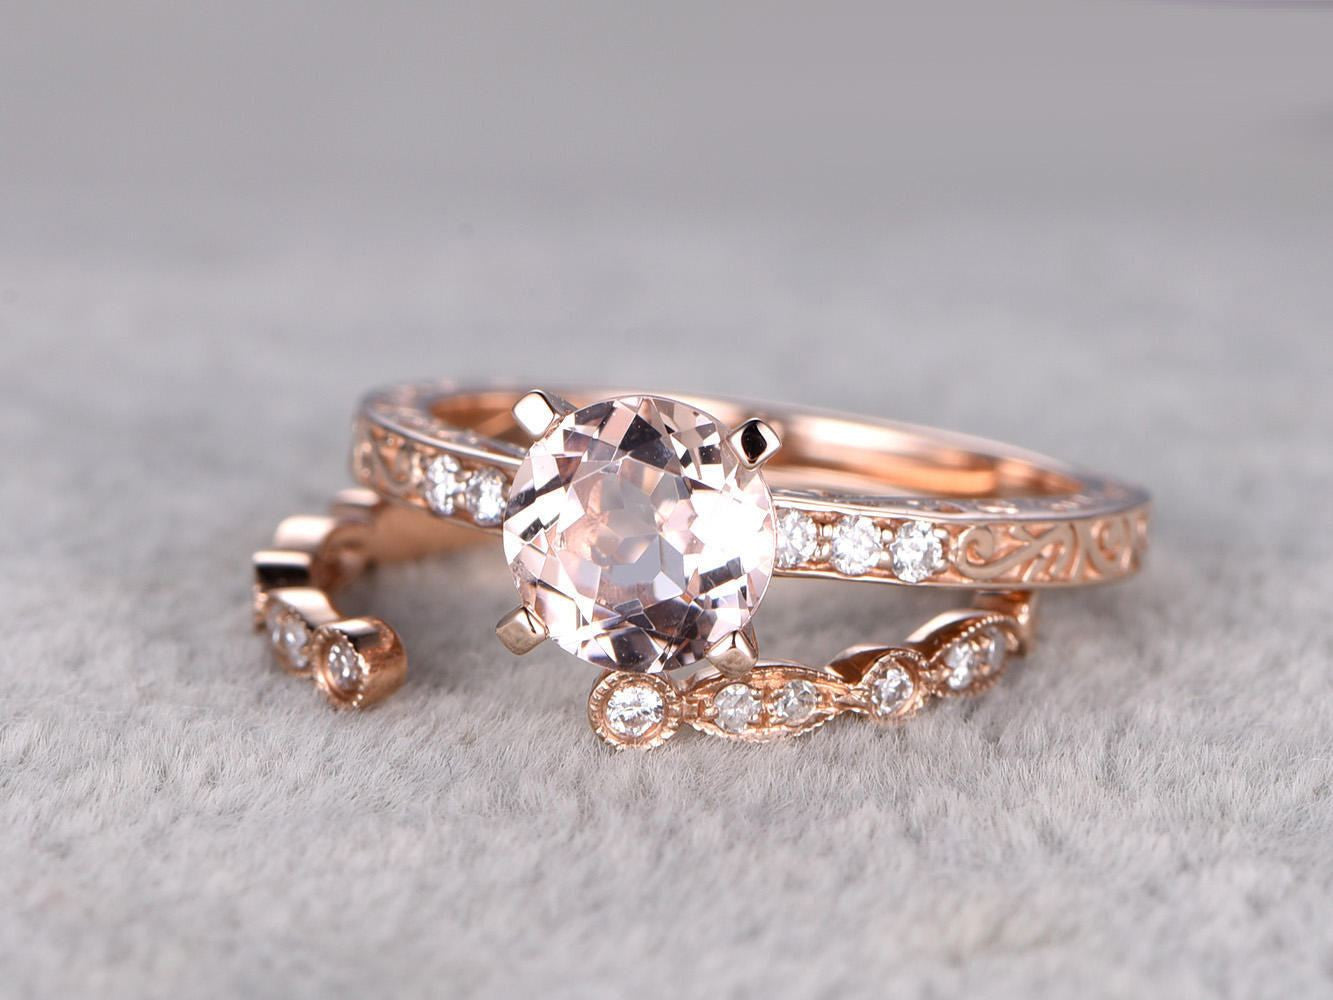 2pcs Morganite Bridal Ring Set,Engagement ring Rose gold,Diamond wedding band,Filigree,Floral design,Unique band,14k,7mm Round,Promise Ring